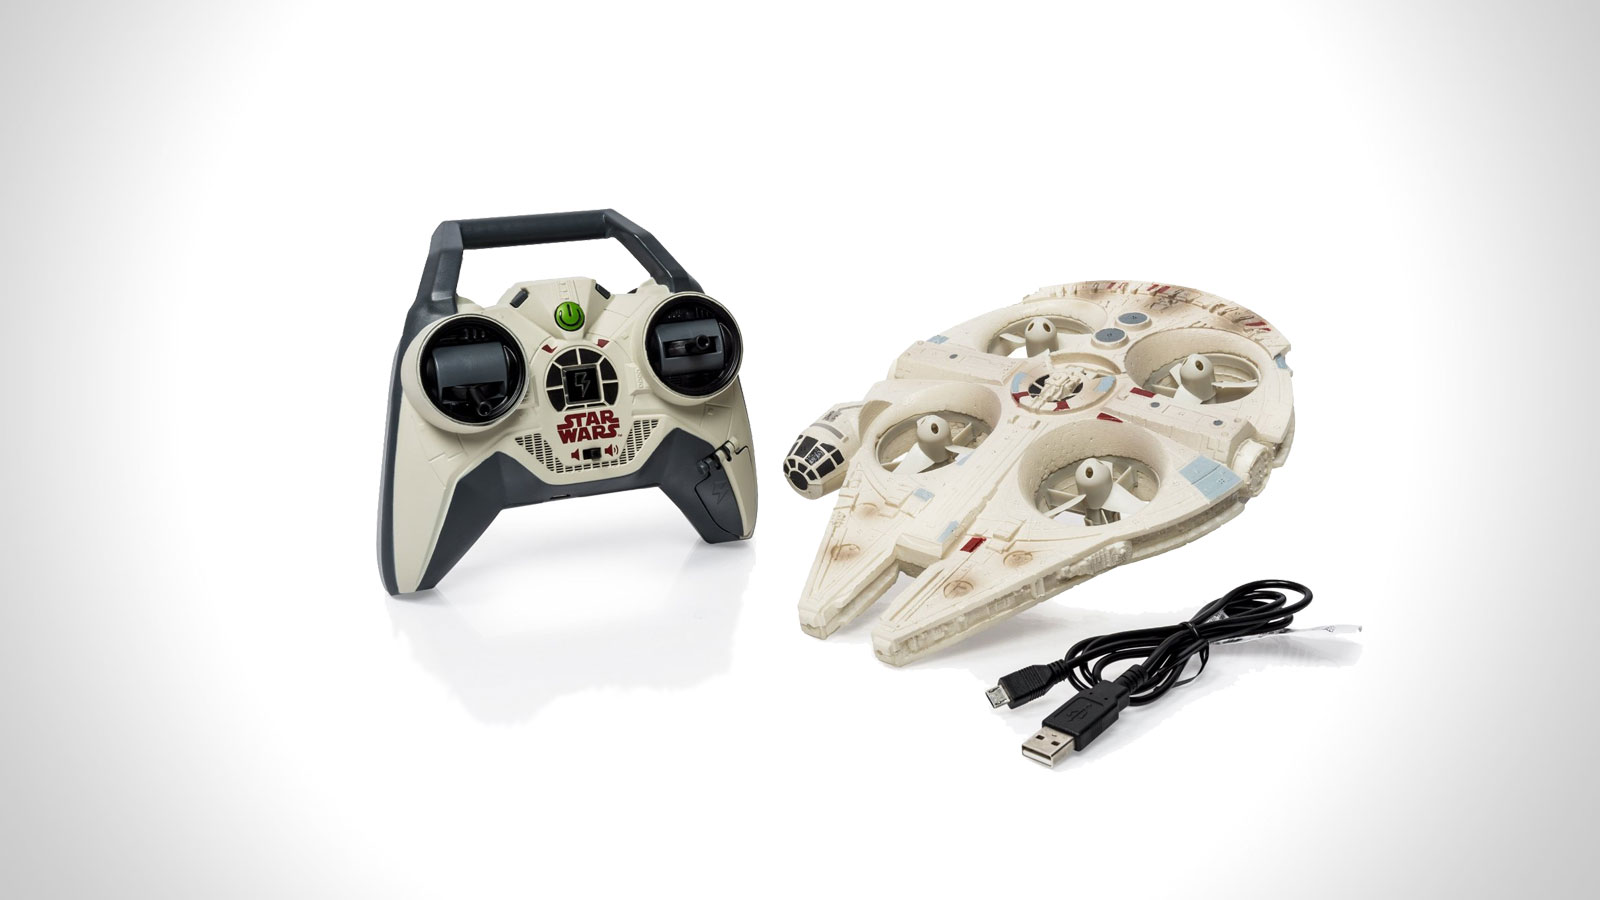 Star Wars Remote Control Millennium Falcon Quad | gifts for men | the best star wars gifts